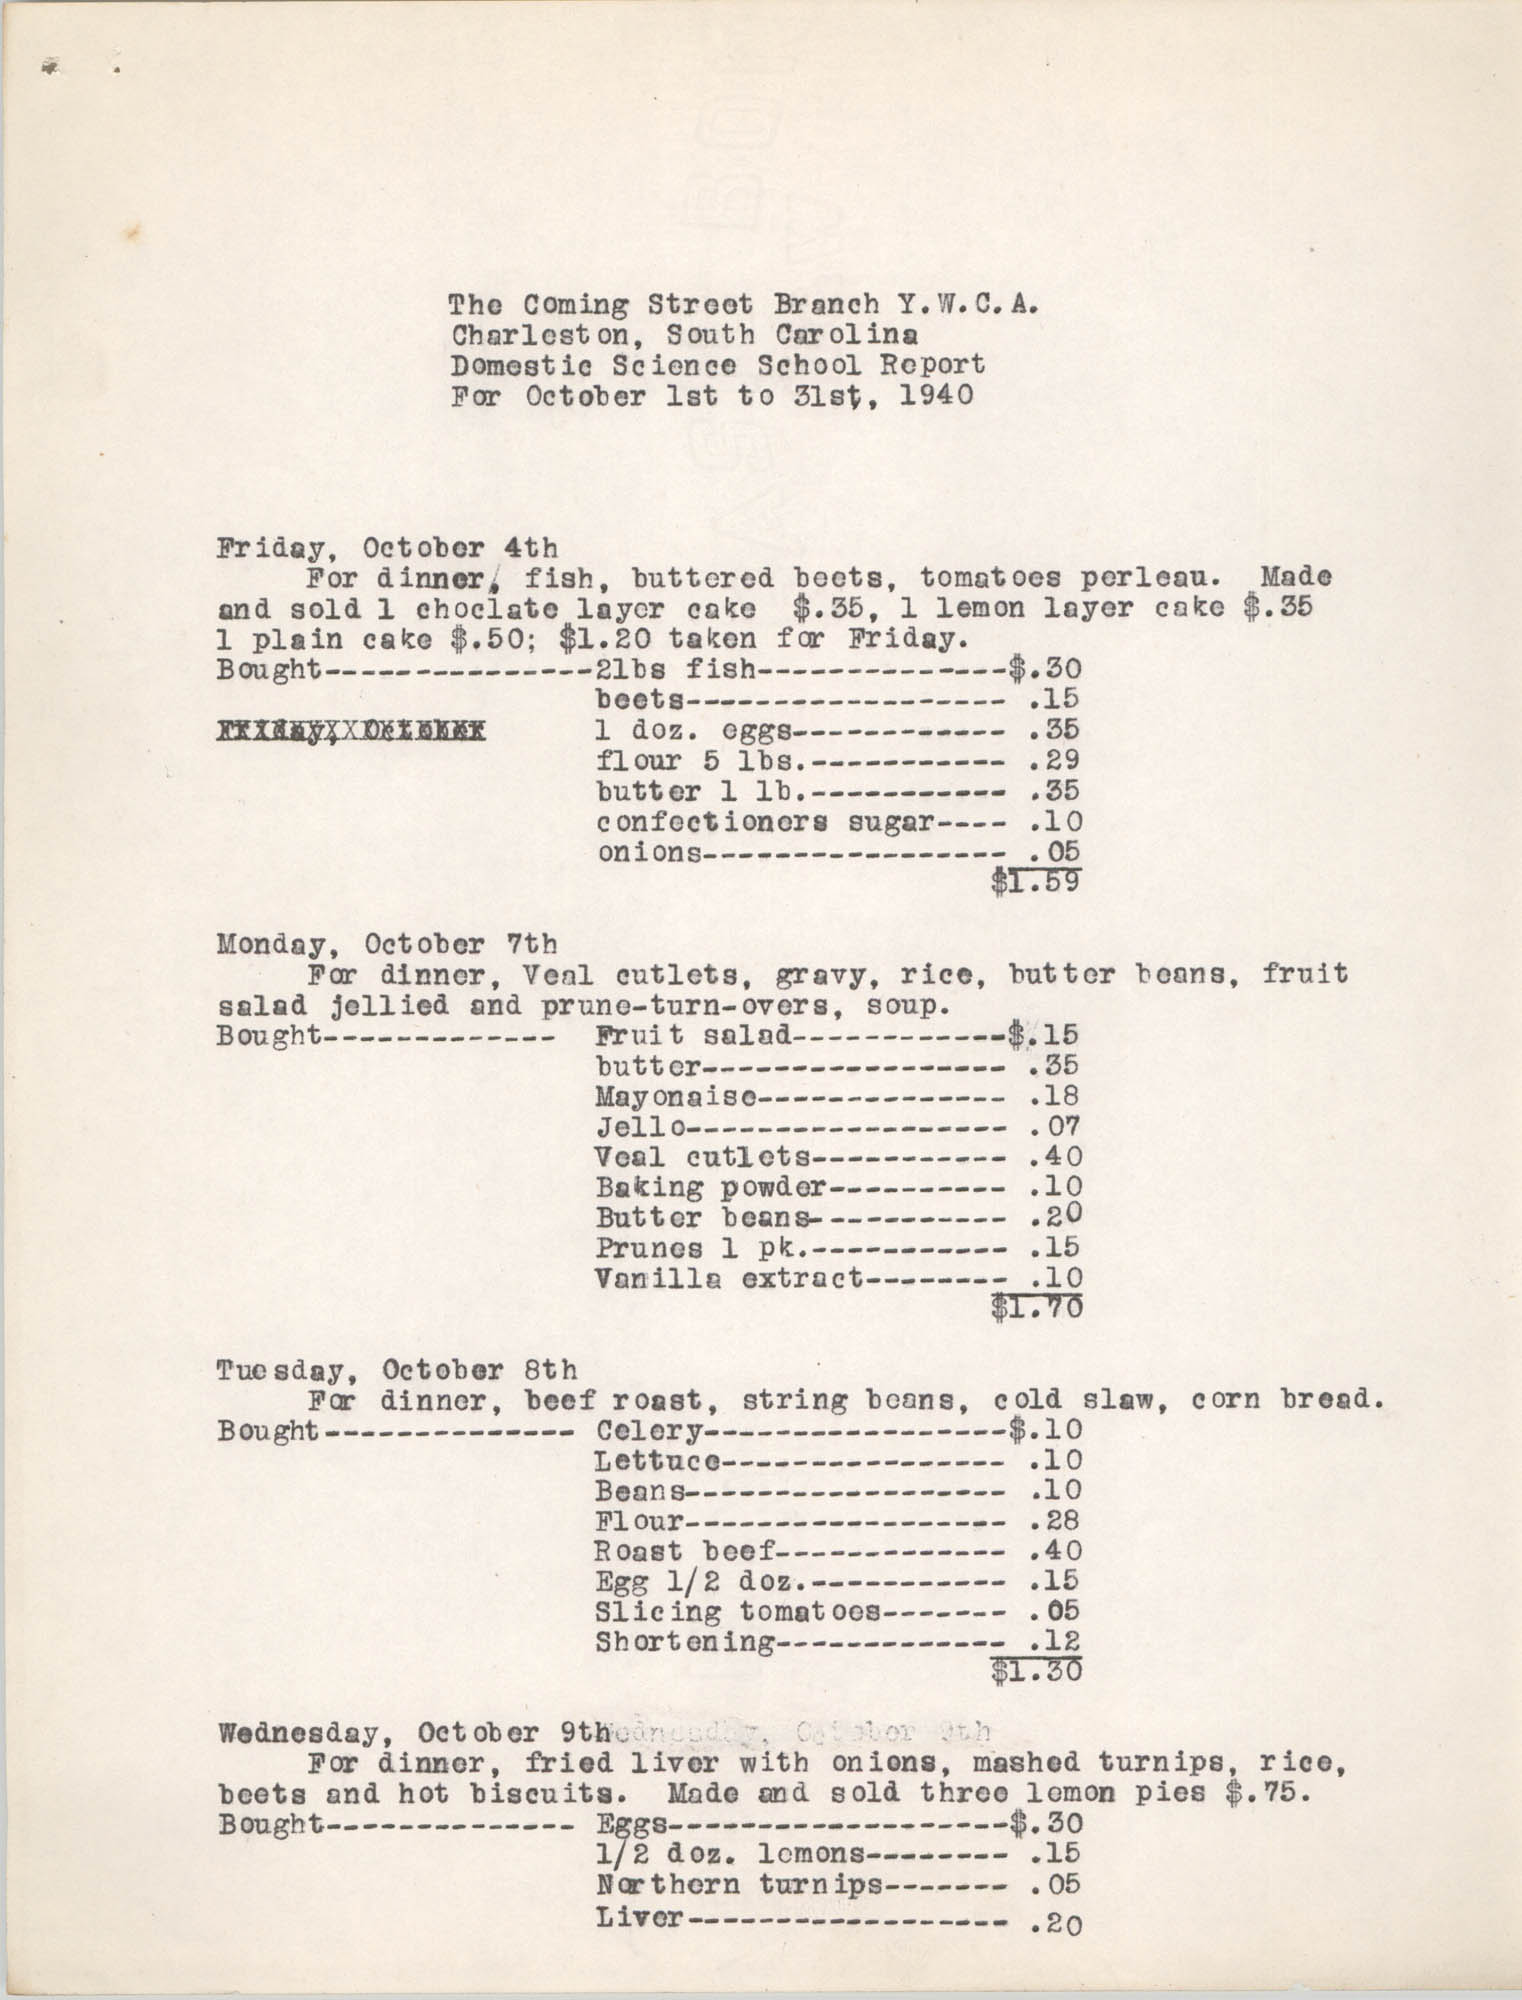 Monthly Report for the Coming Street Y.W.C.A., Domestic Science School, October 1940, Page 2